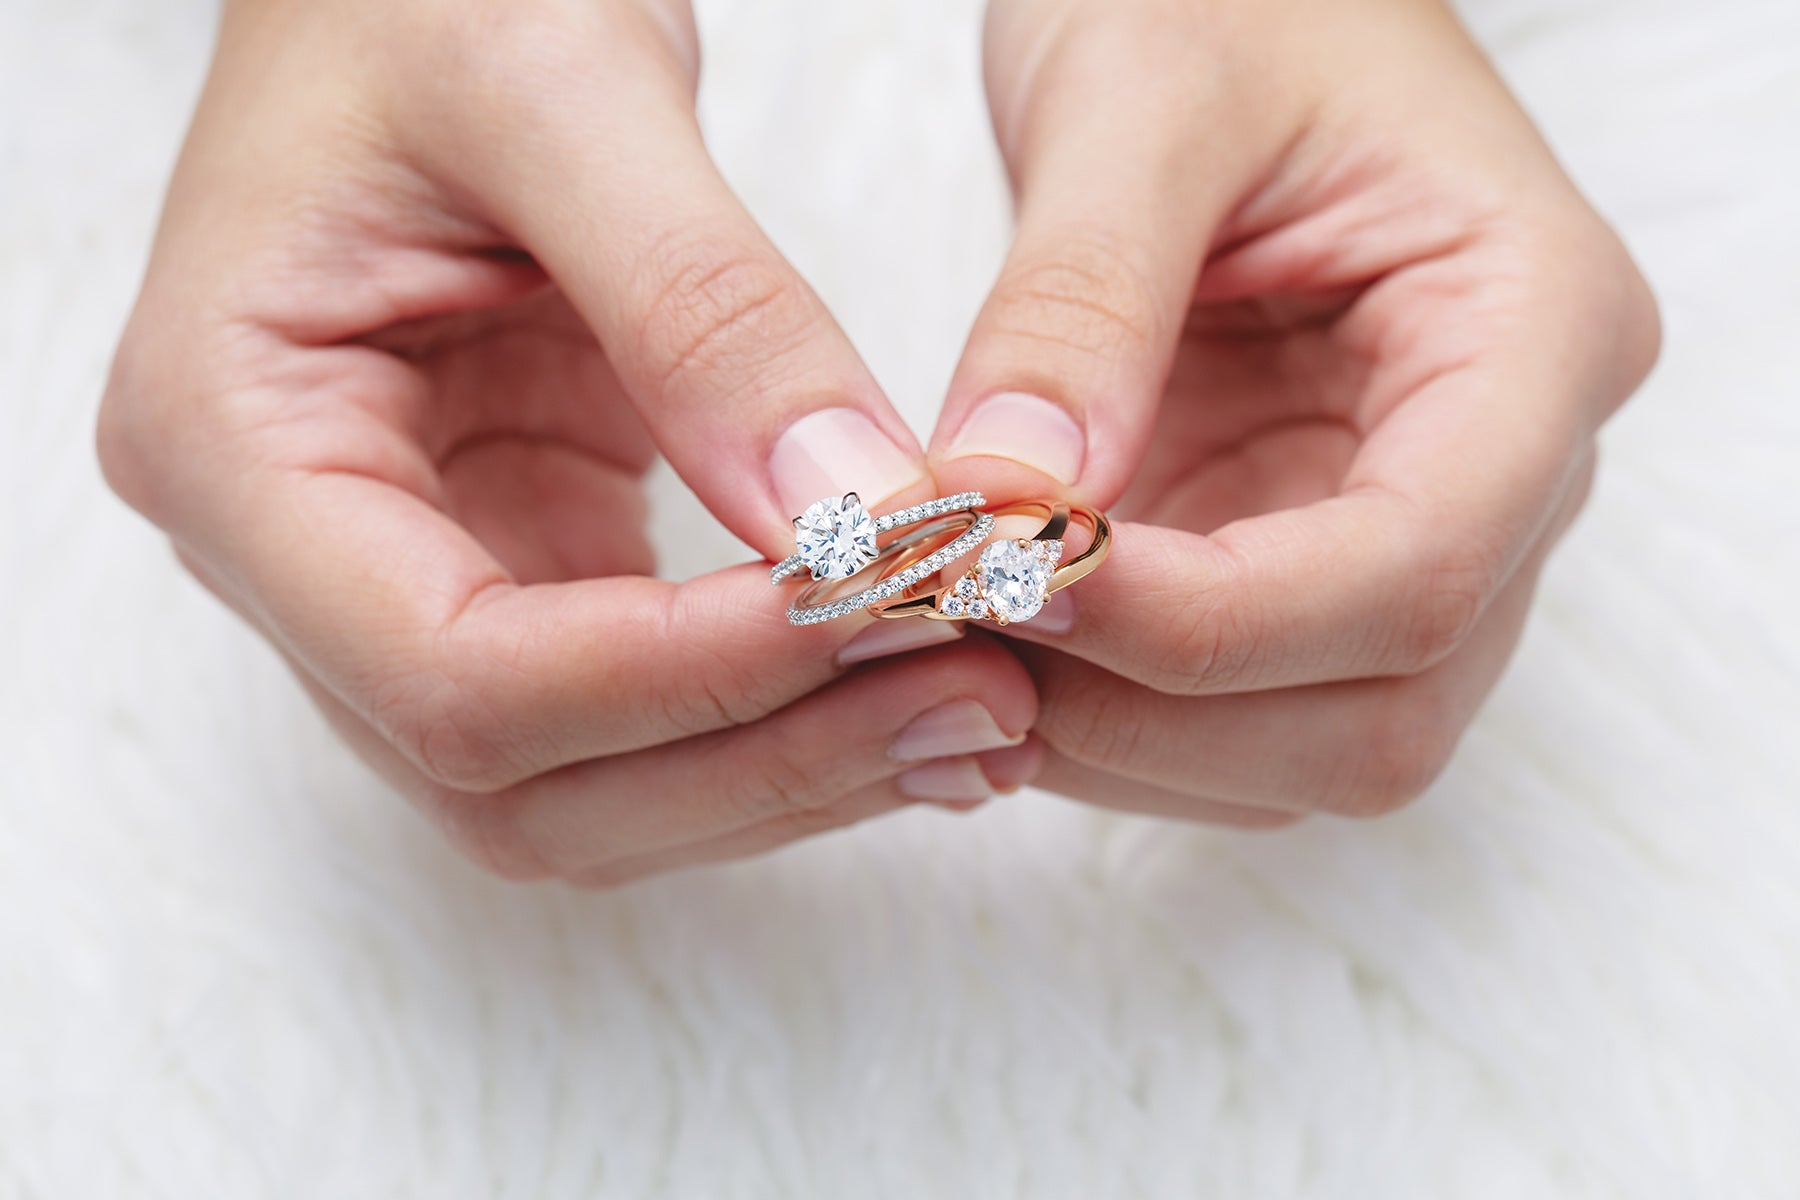 Engagement Ring Warranty: Why It's So Important